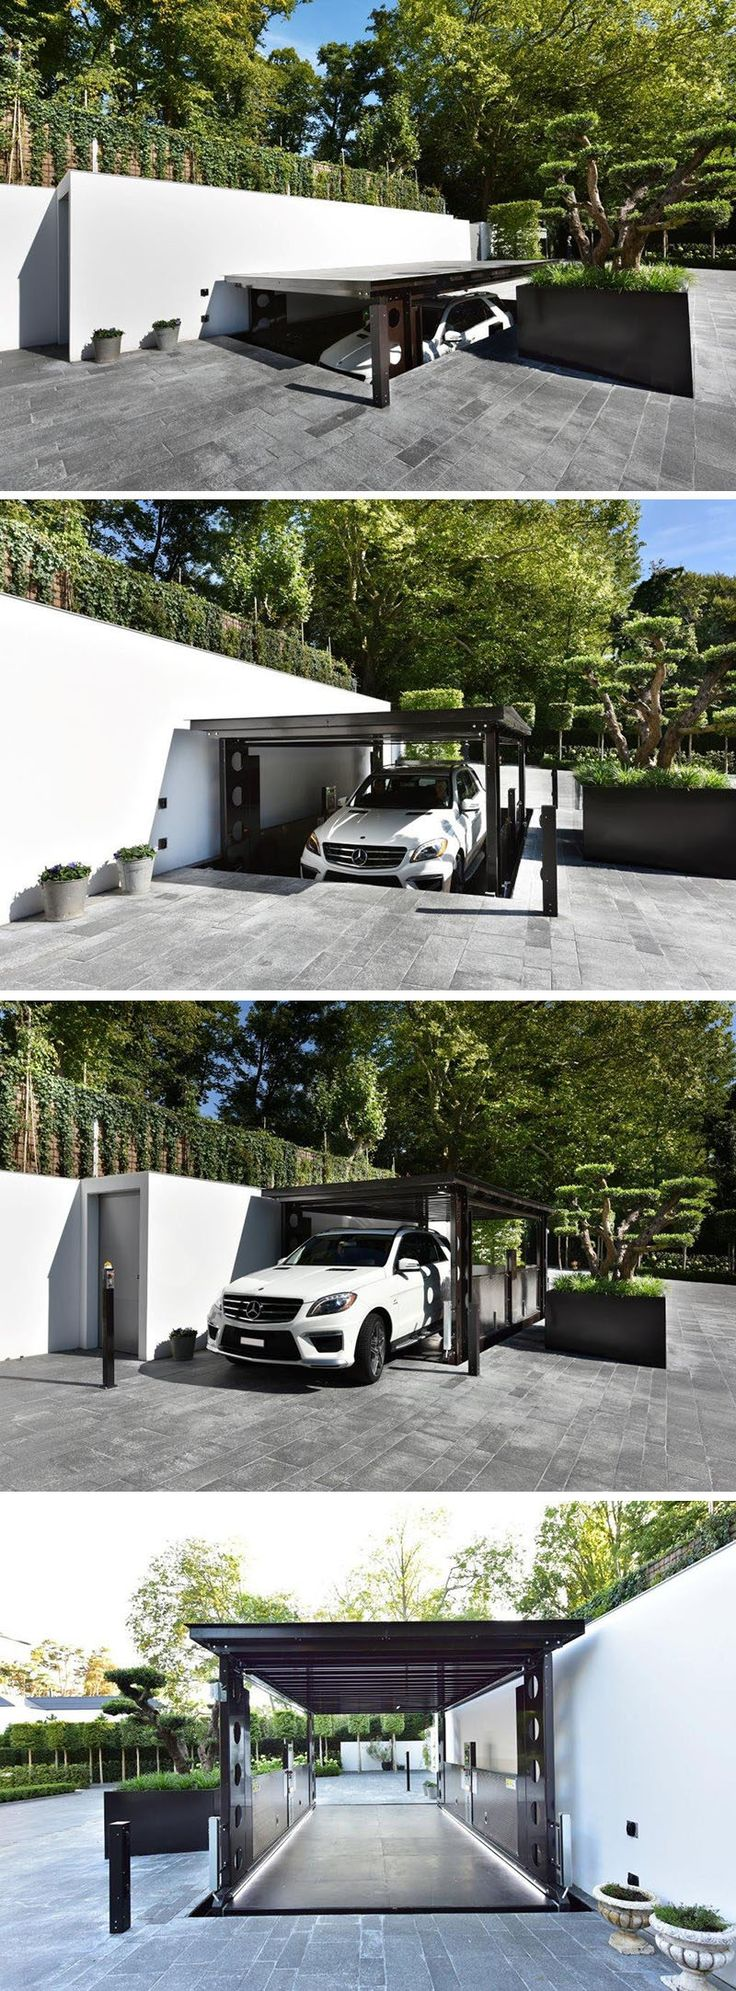 Design house car - This Disappearing Garage Lowers Into The Ground And Becomes Invisible